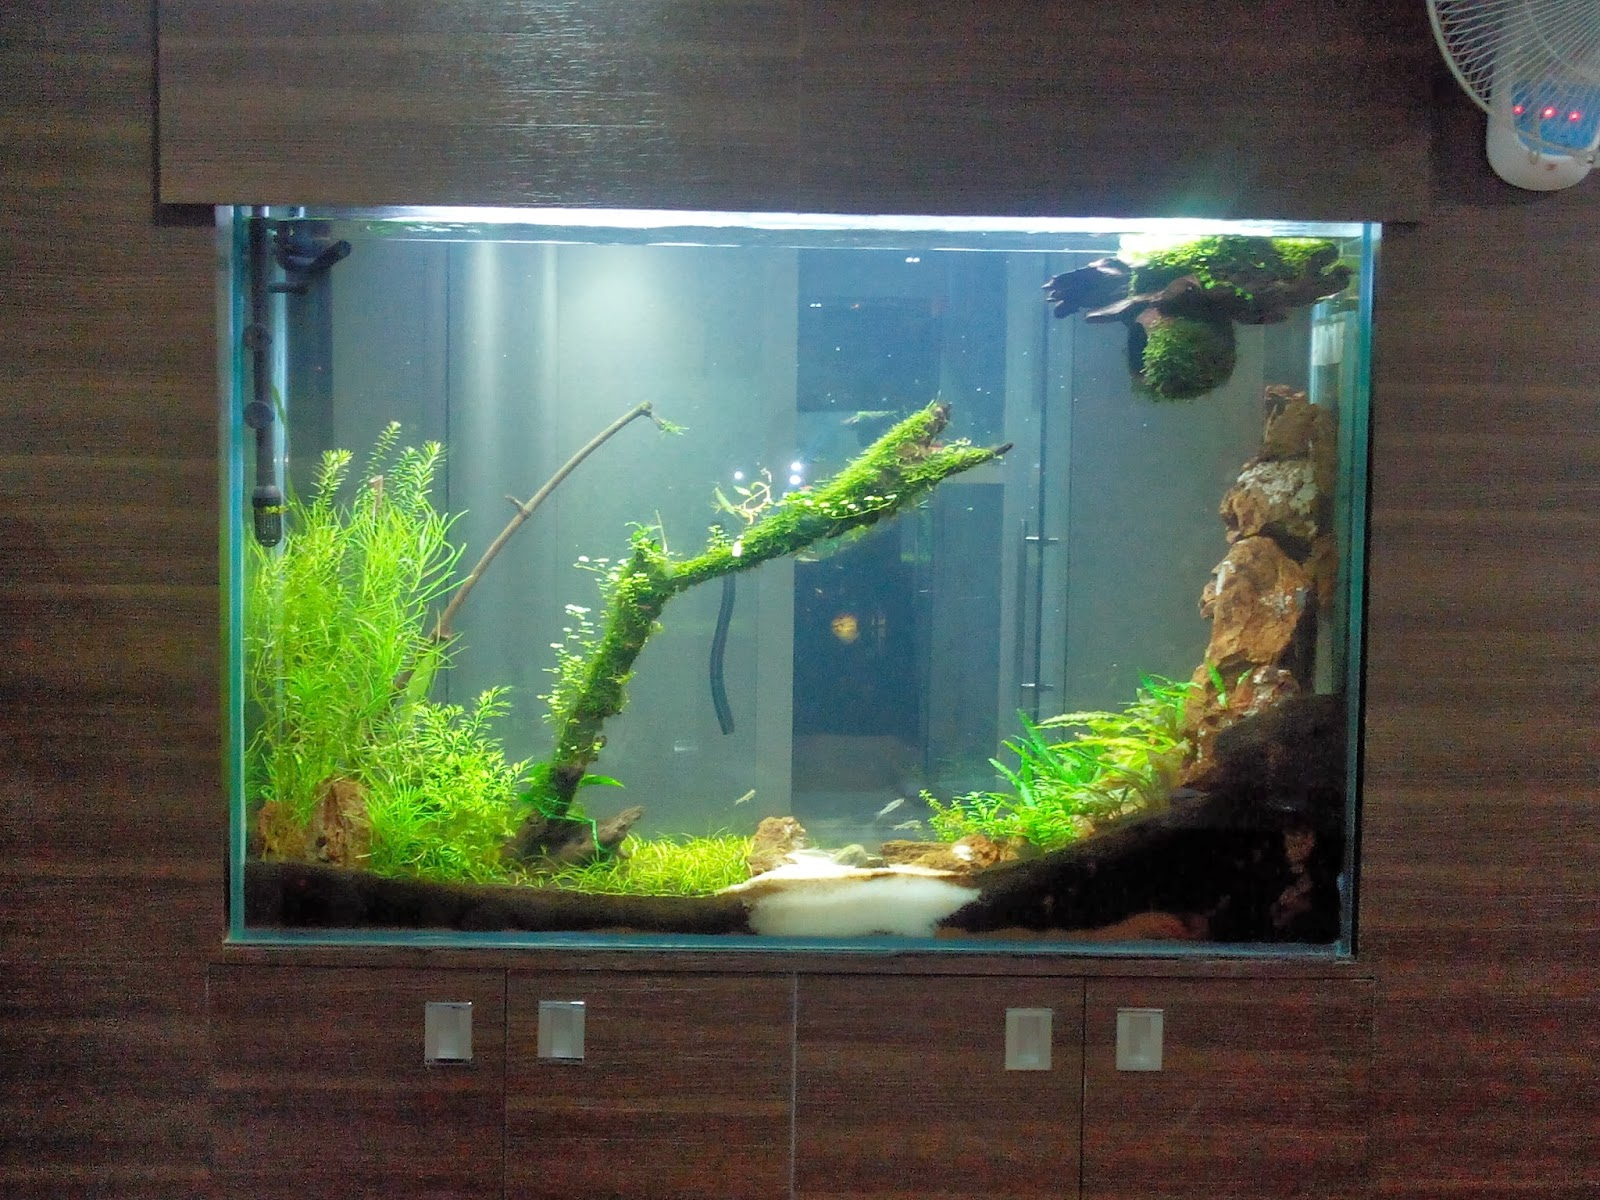 Fish aquarium price in bangalore - We Provide All Type Of Live Aquarium Plants Many More To Choose From